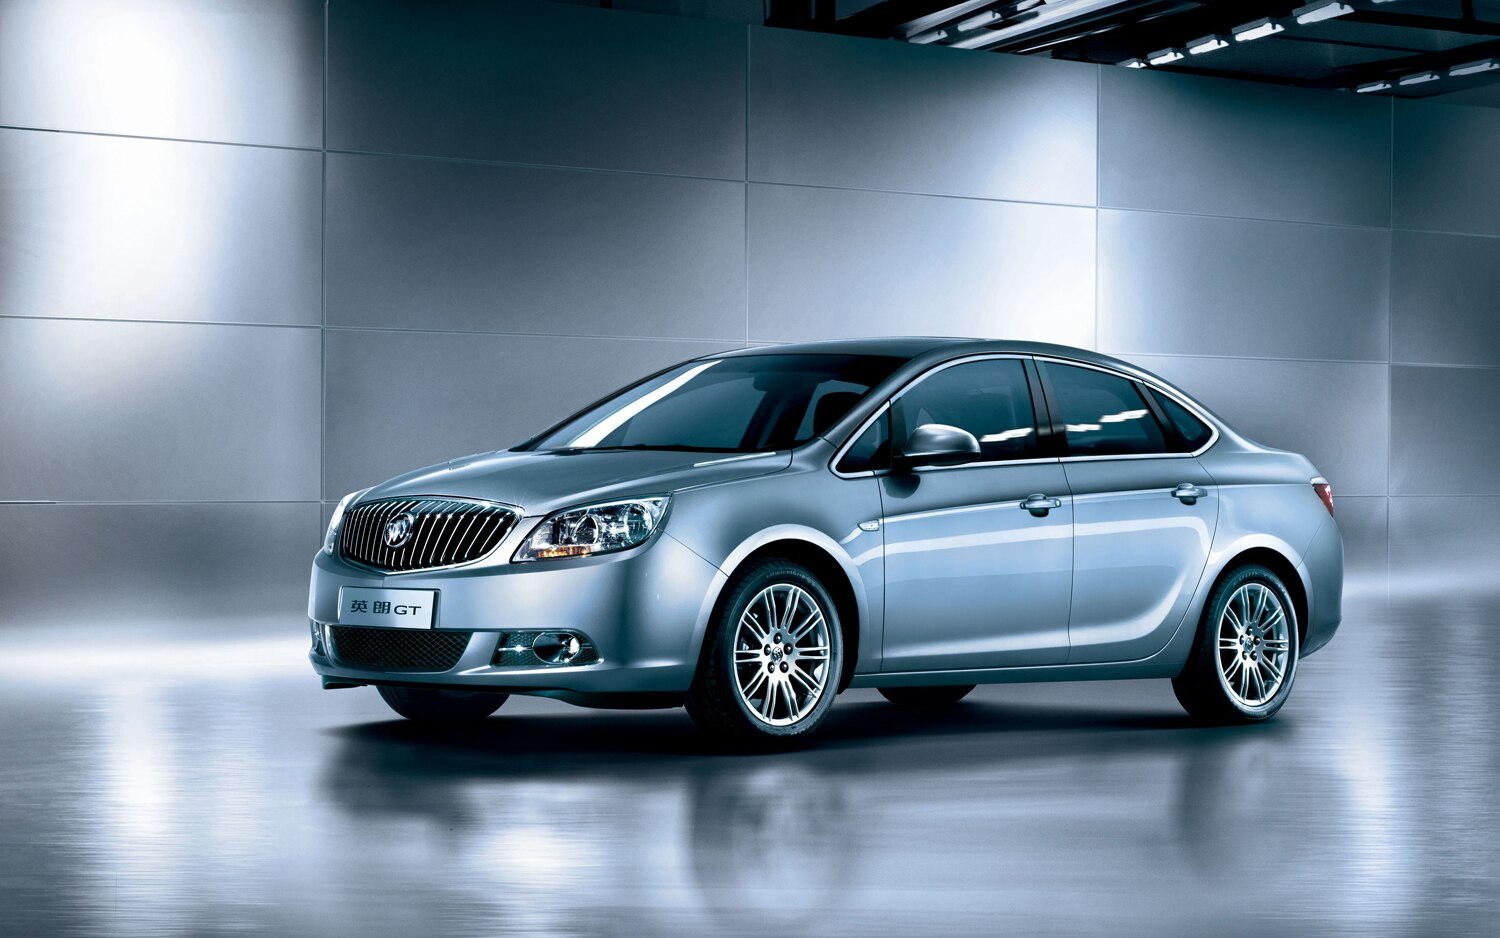 Buick Excelle GT Sedan1